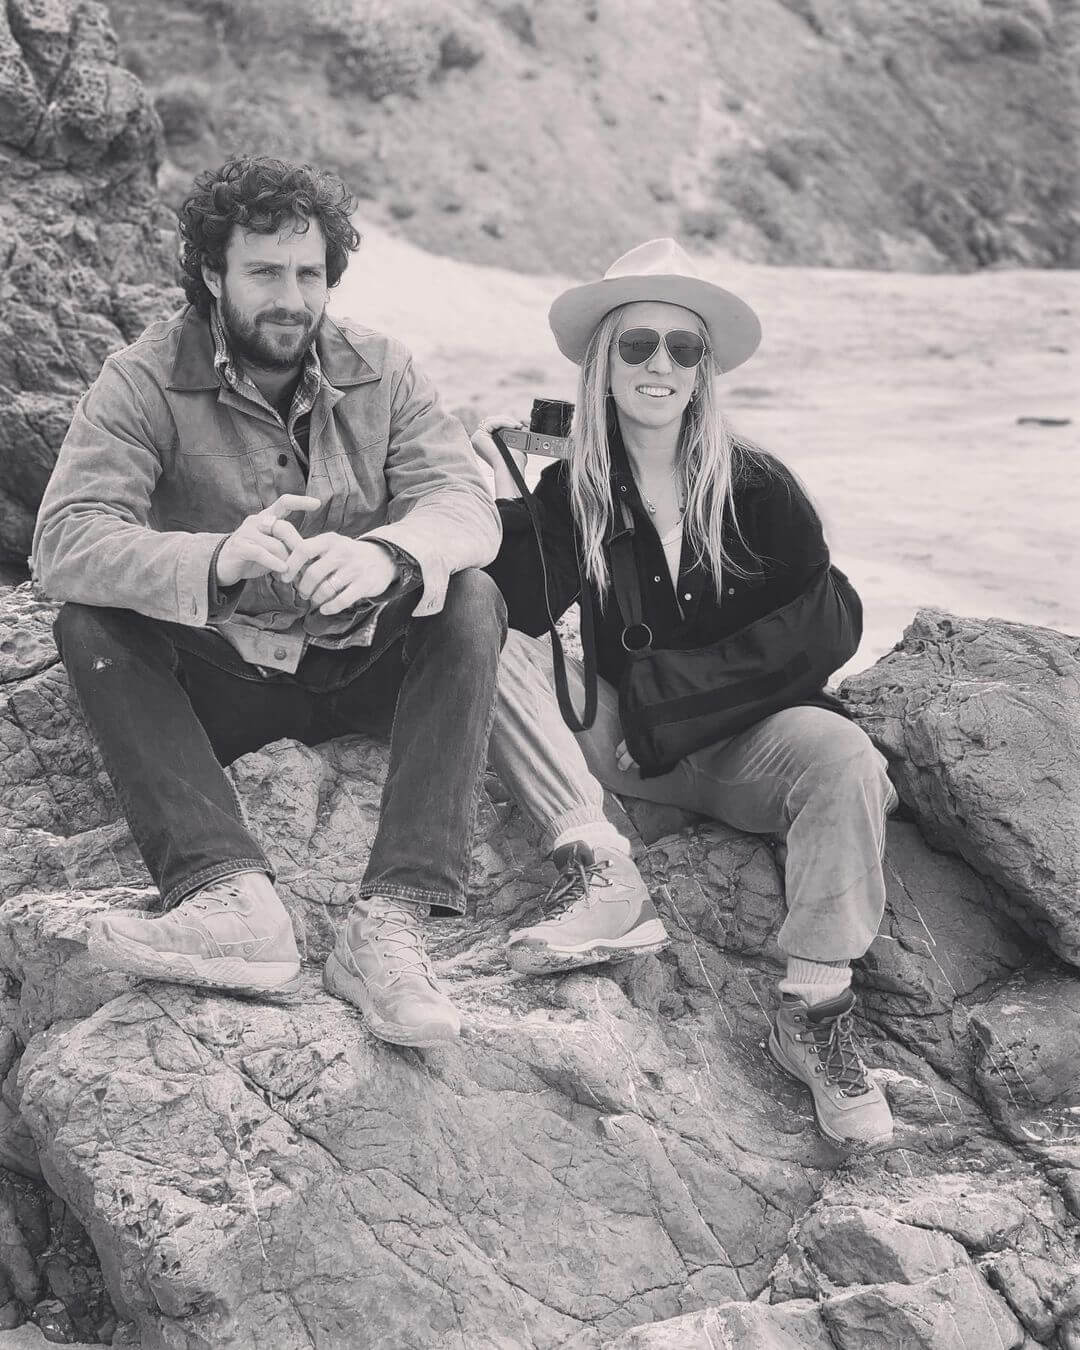 Has Aaron Taylor Johnson divorced wife Sam? Twitter reacts